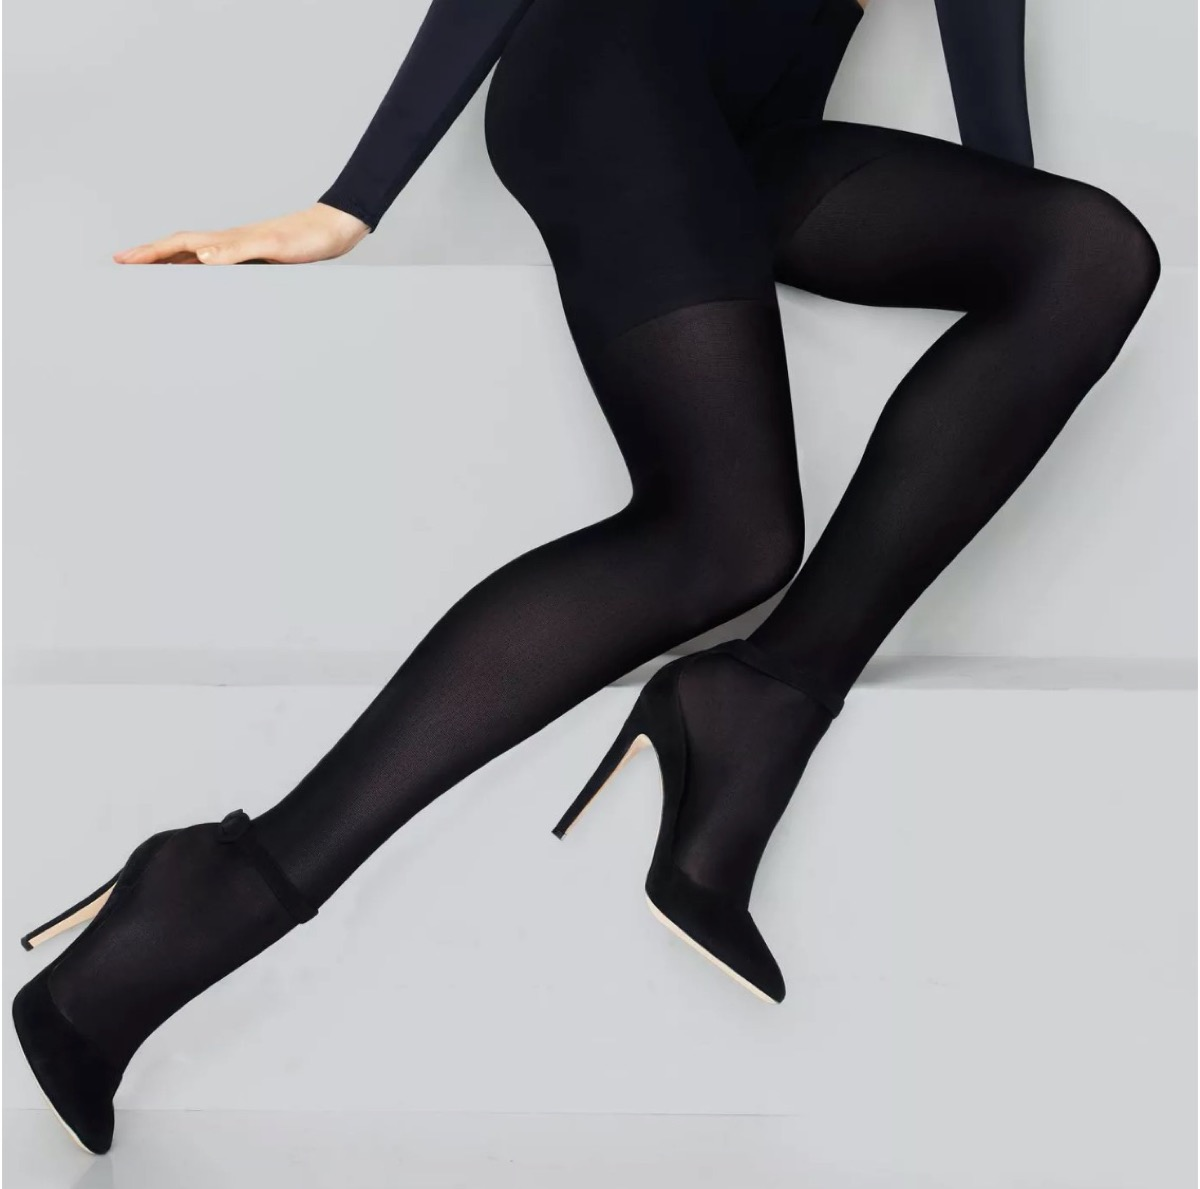 woman in black tights and heels